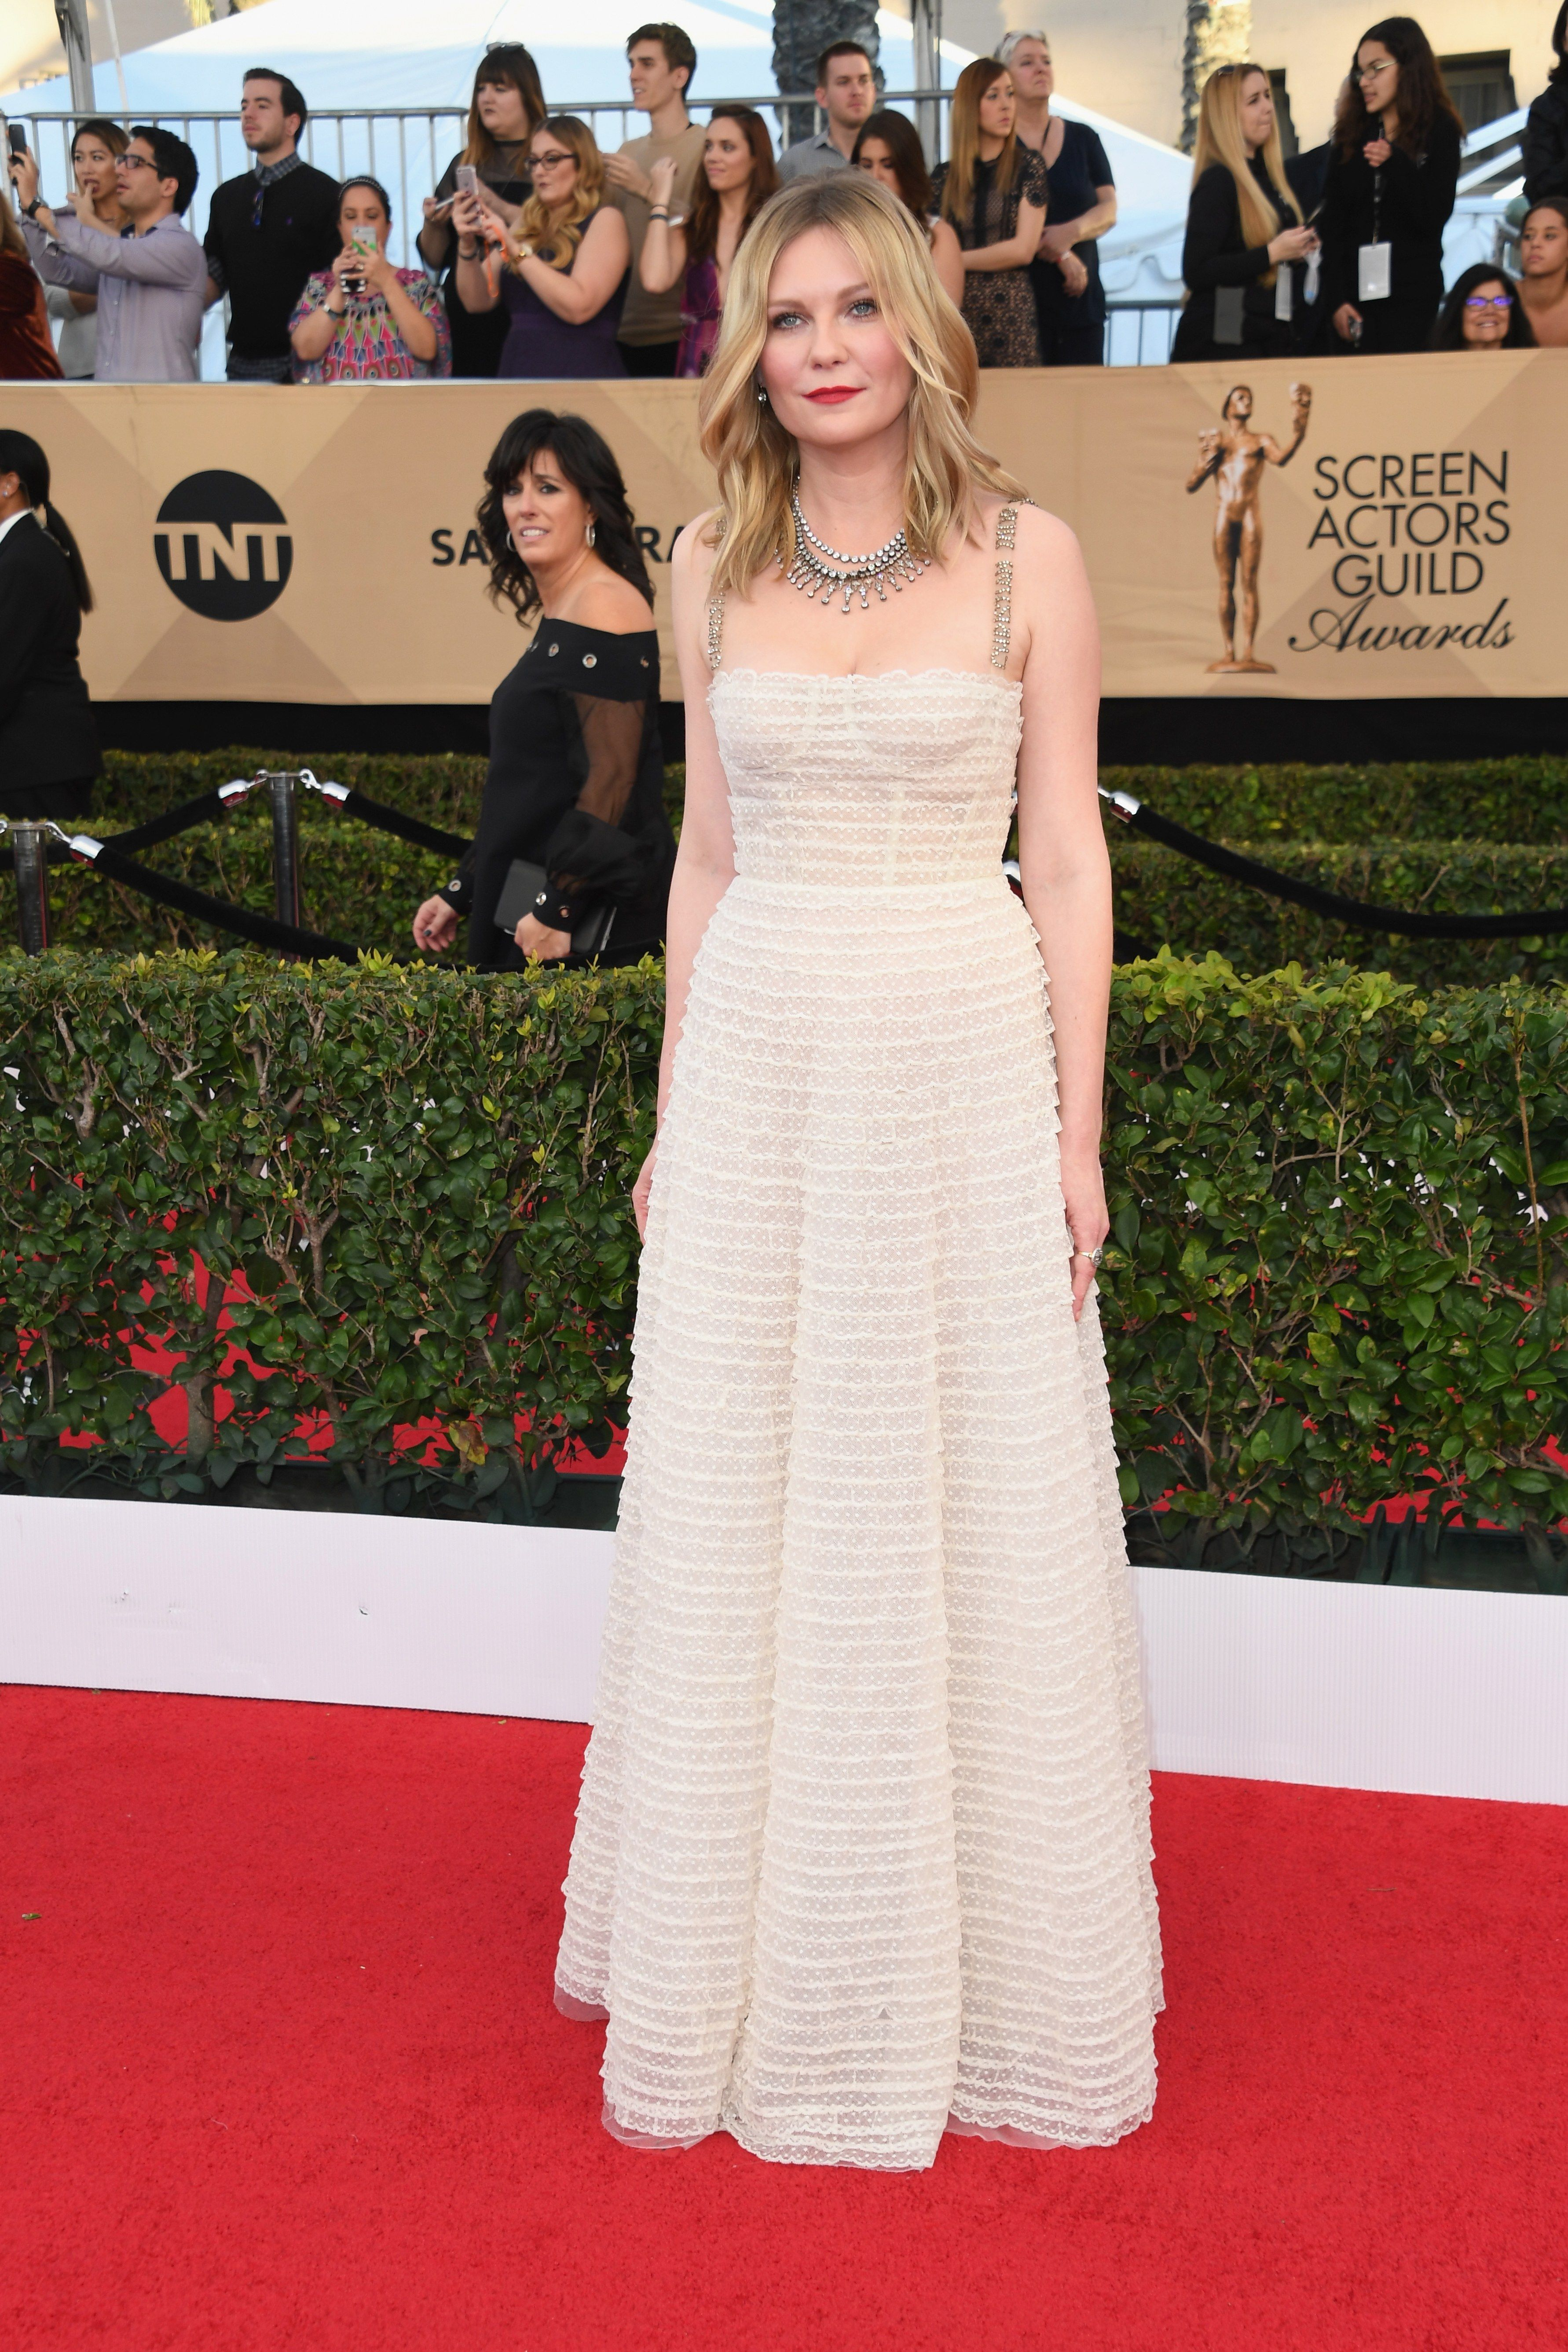 Kirsten dunst master of vintage has nailed it on the red carpet